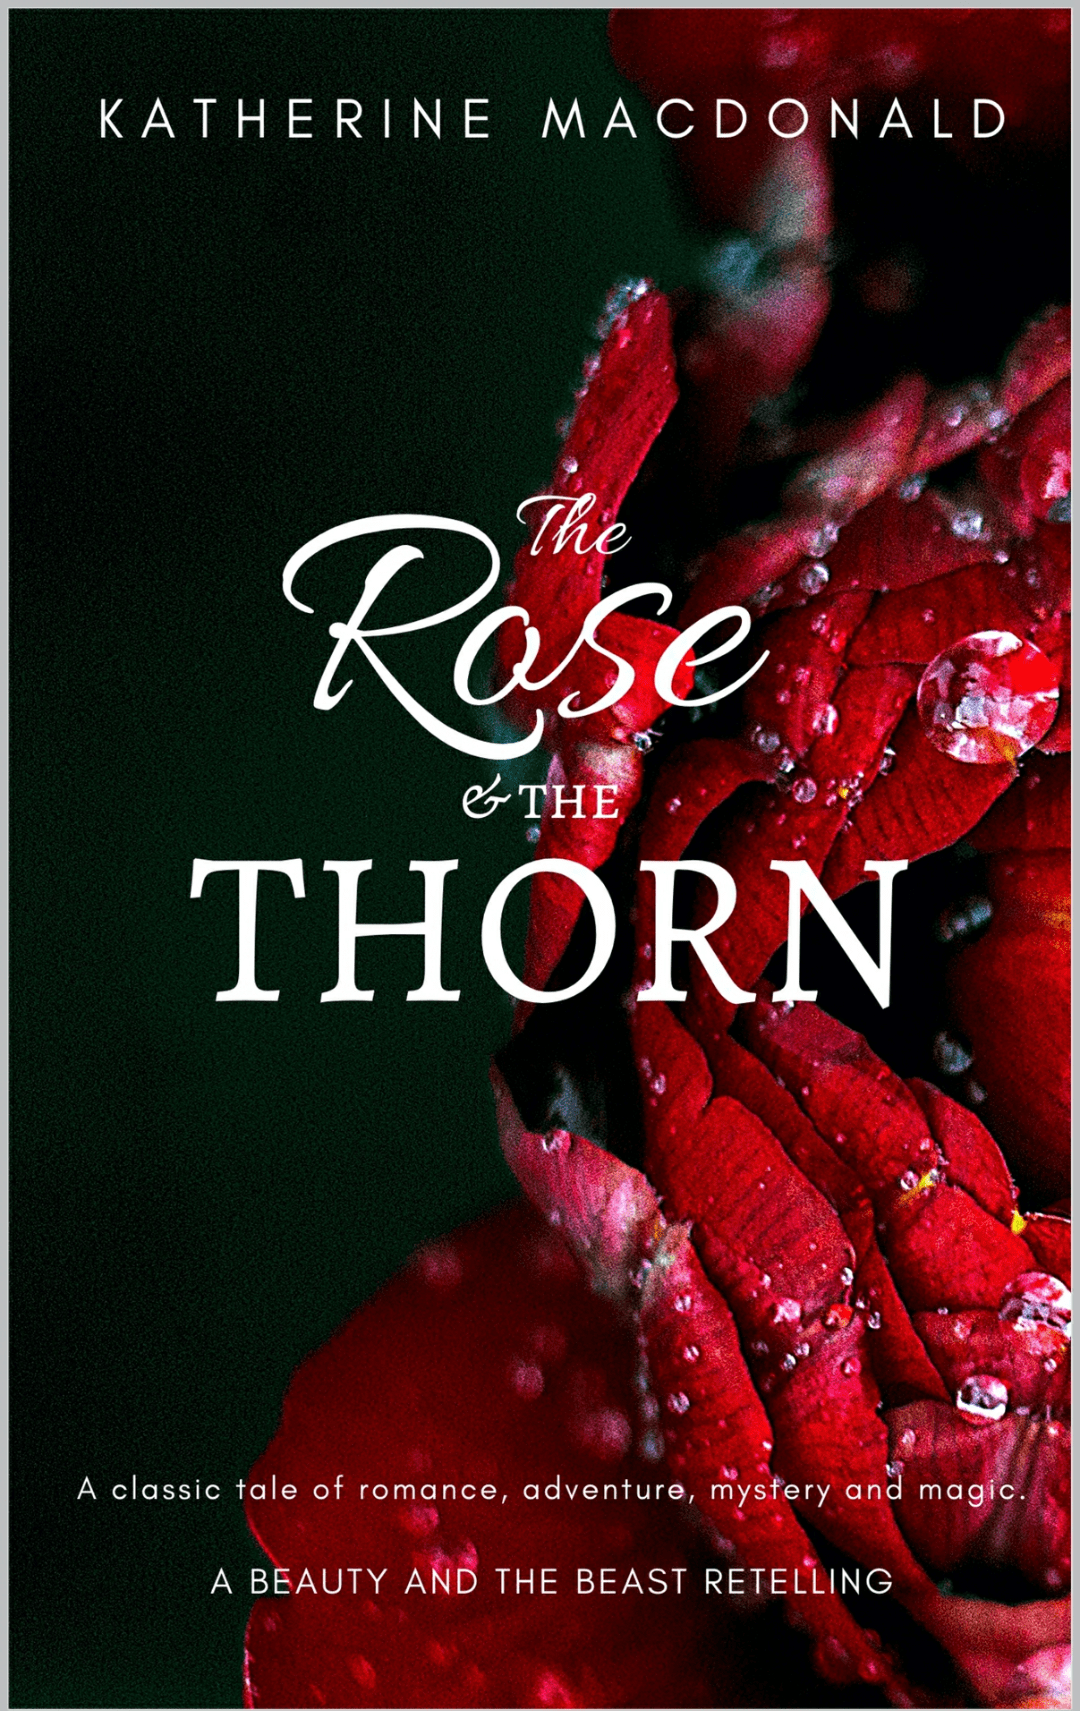 The Rose and The Thorn- Book Review